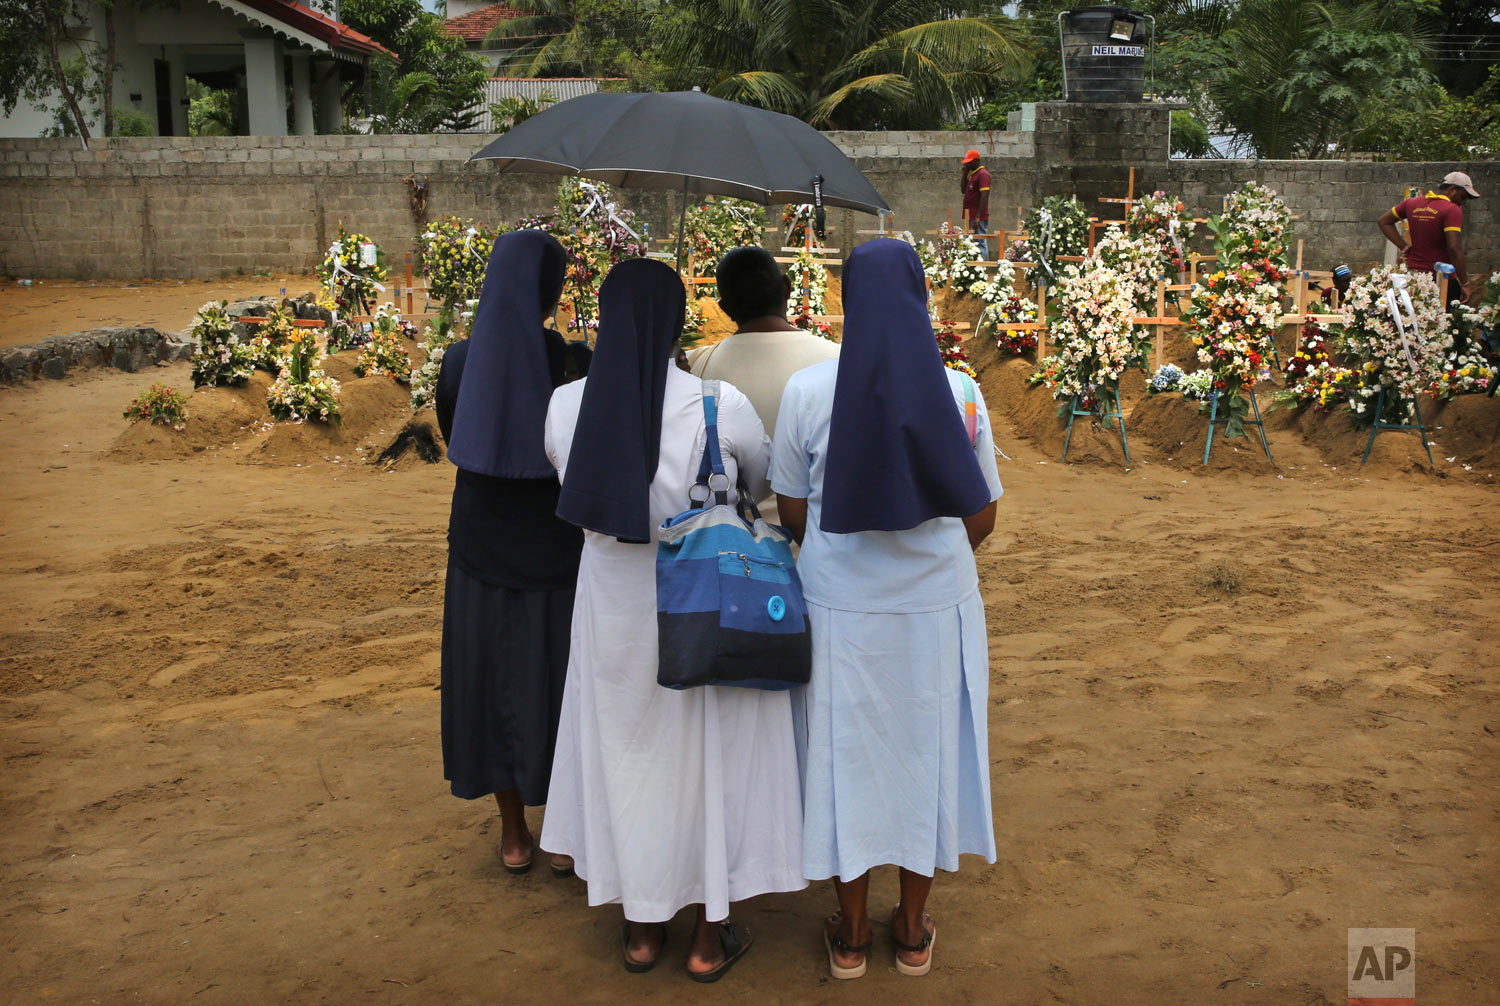 Catholic nuns stand with a relative of a victim of Easter Sunday's bomb blast at St. Sebastian Church at a mass burial site in Negombo, Sri Lanka, April 25, 2019. (AP Photo/Manish Swarup)